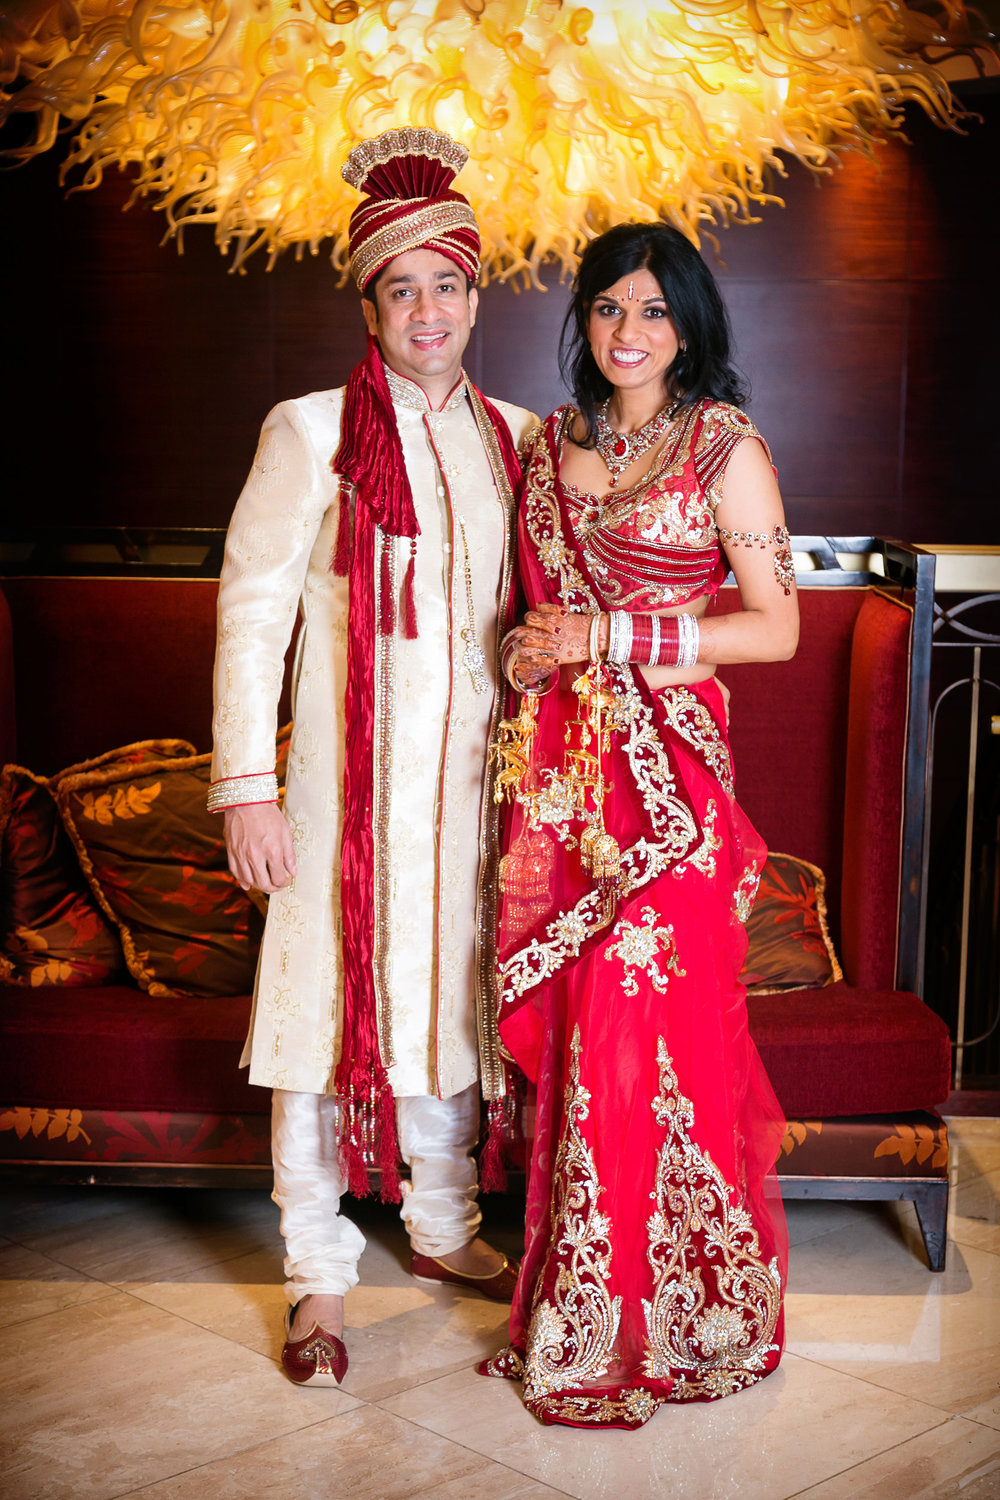 Indian-Wedding-Ritz-Carlton-Denver-018.jpg